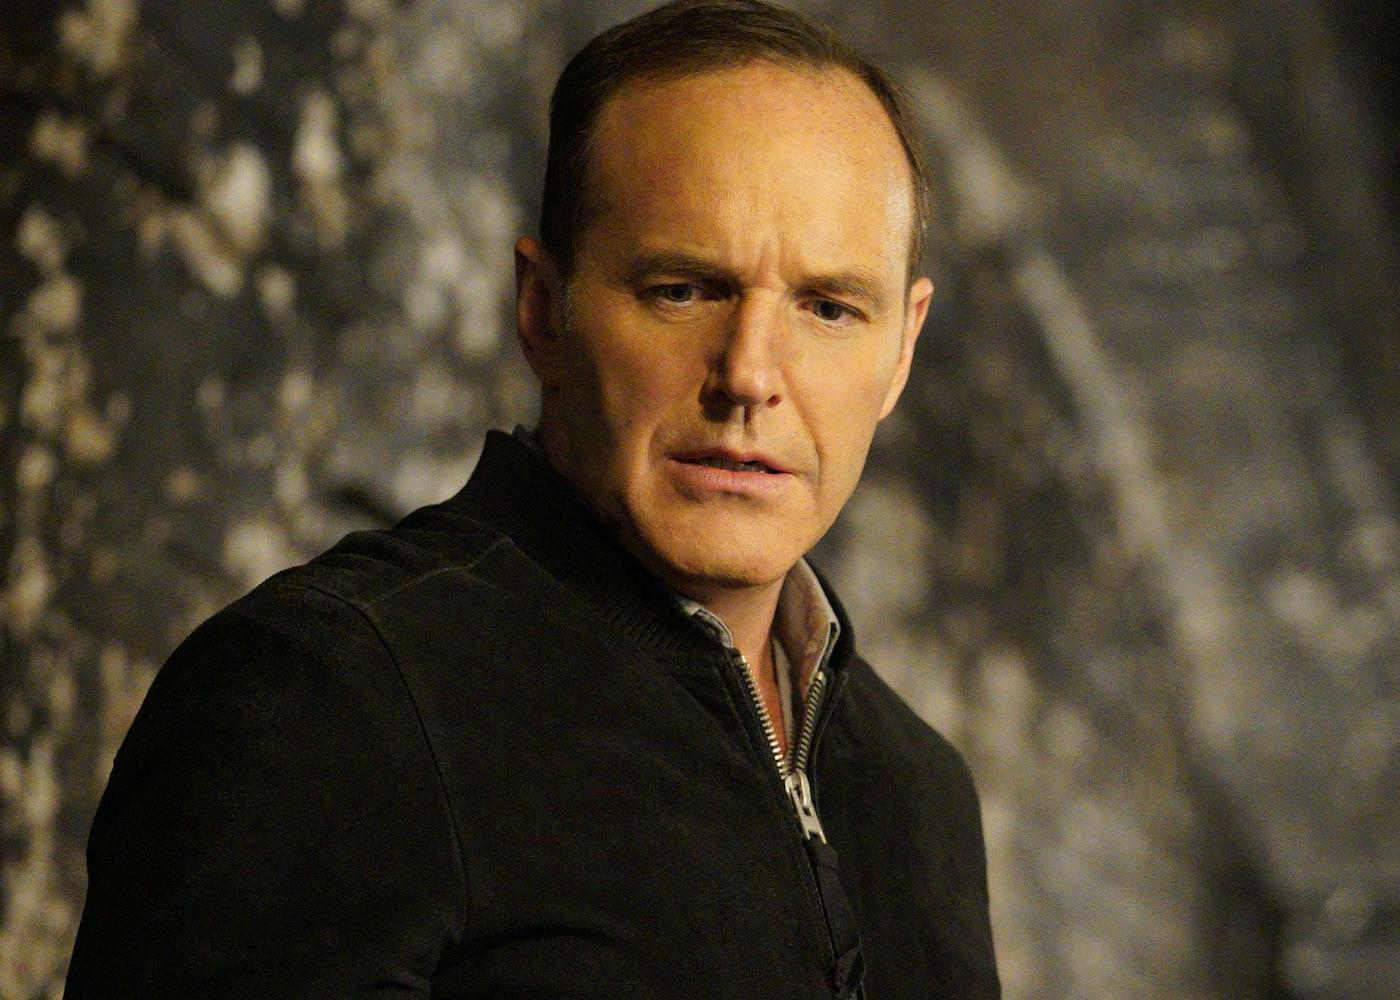 Agents of S.H.I.E.L.D.: Where is Coulson, and What Can We Expect in Season 5?